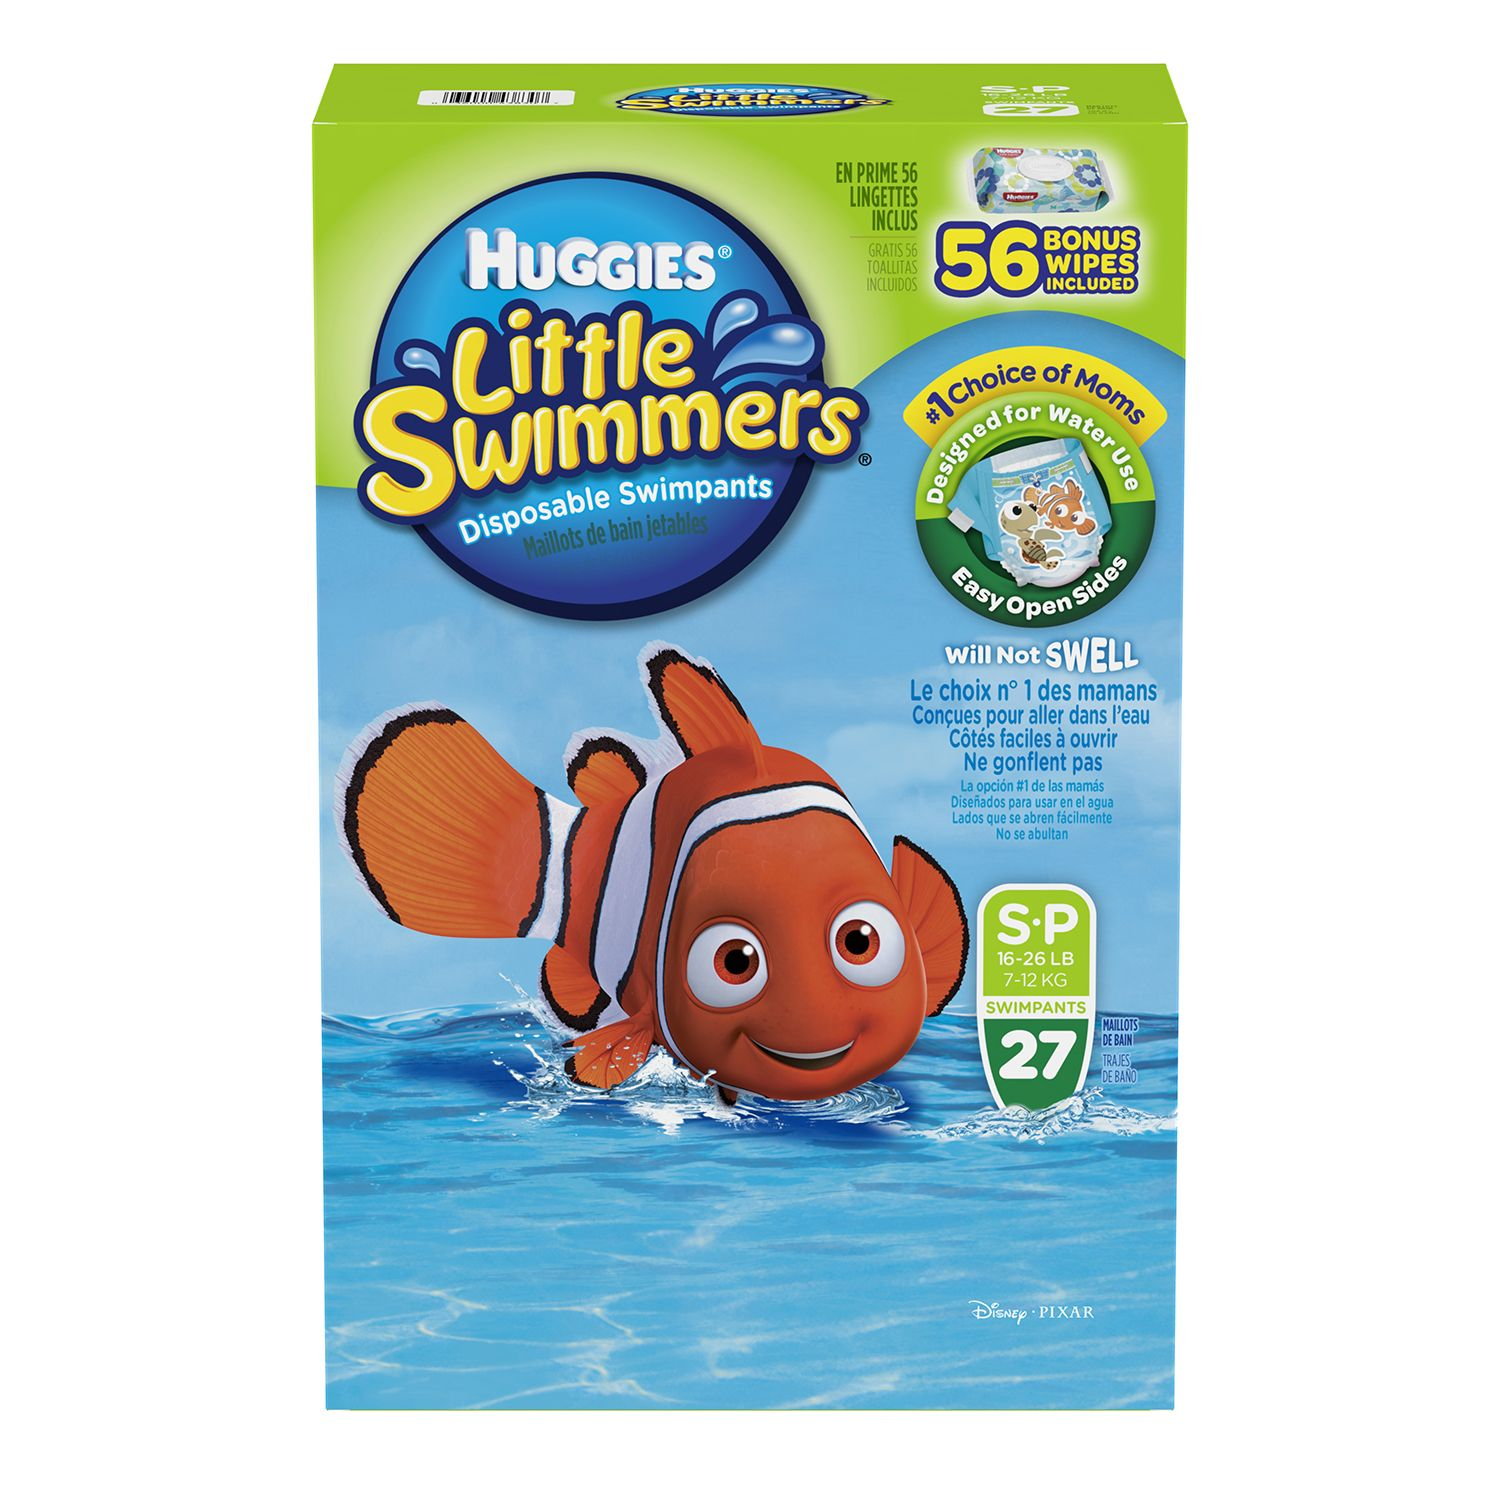 Huggies Little Swimmers Swimpants, 27ct. - Small